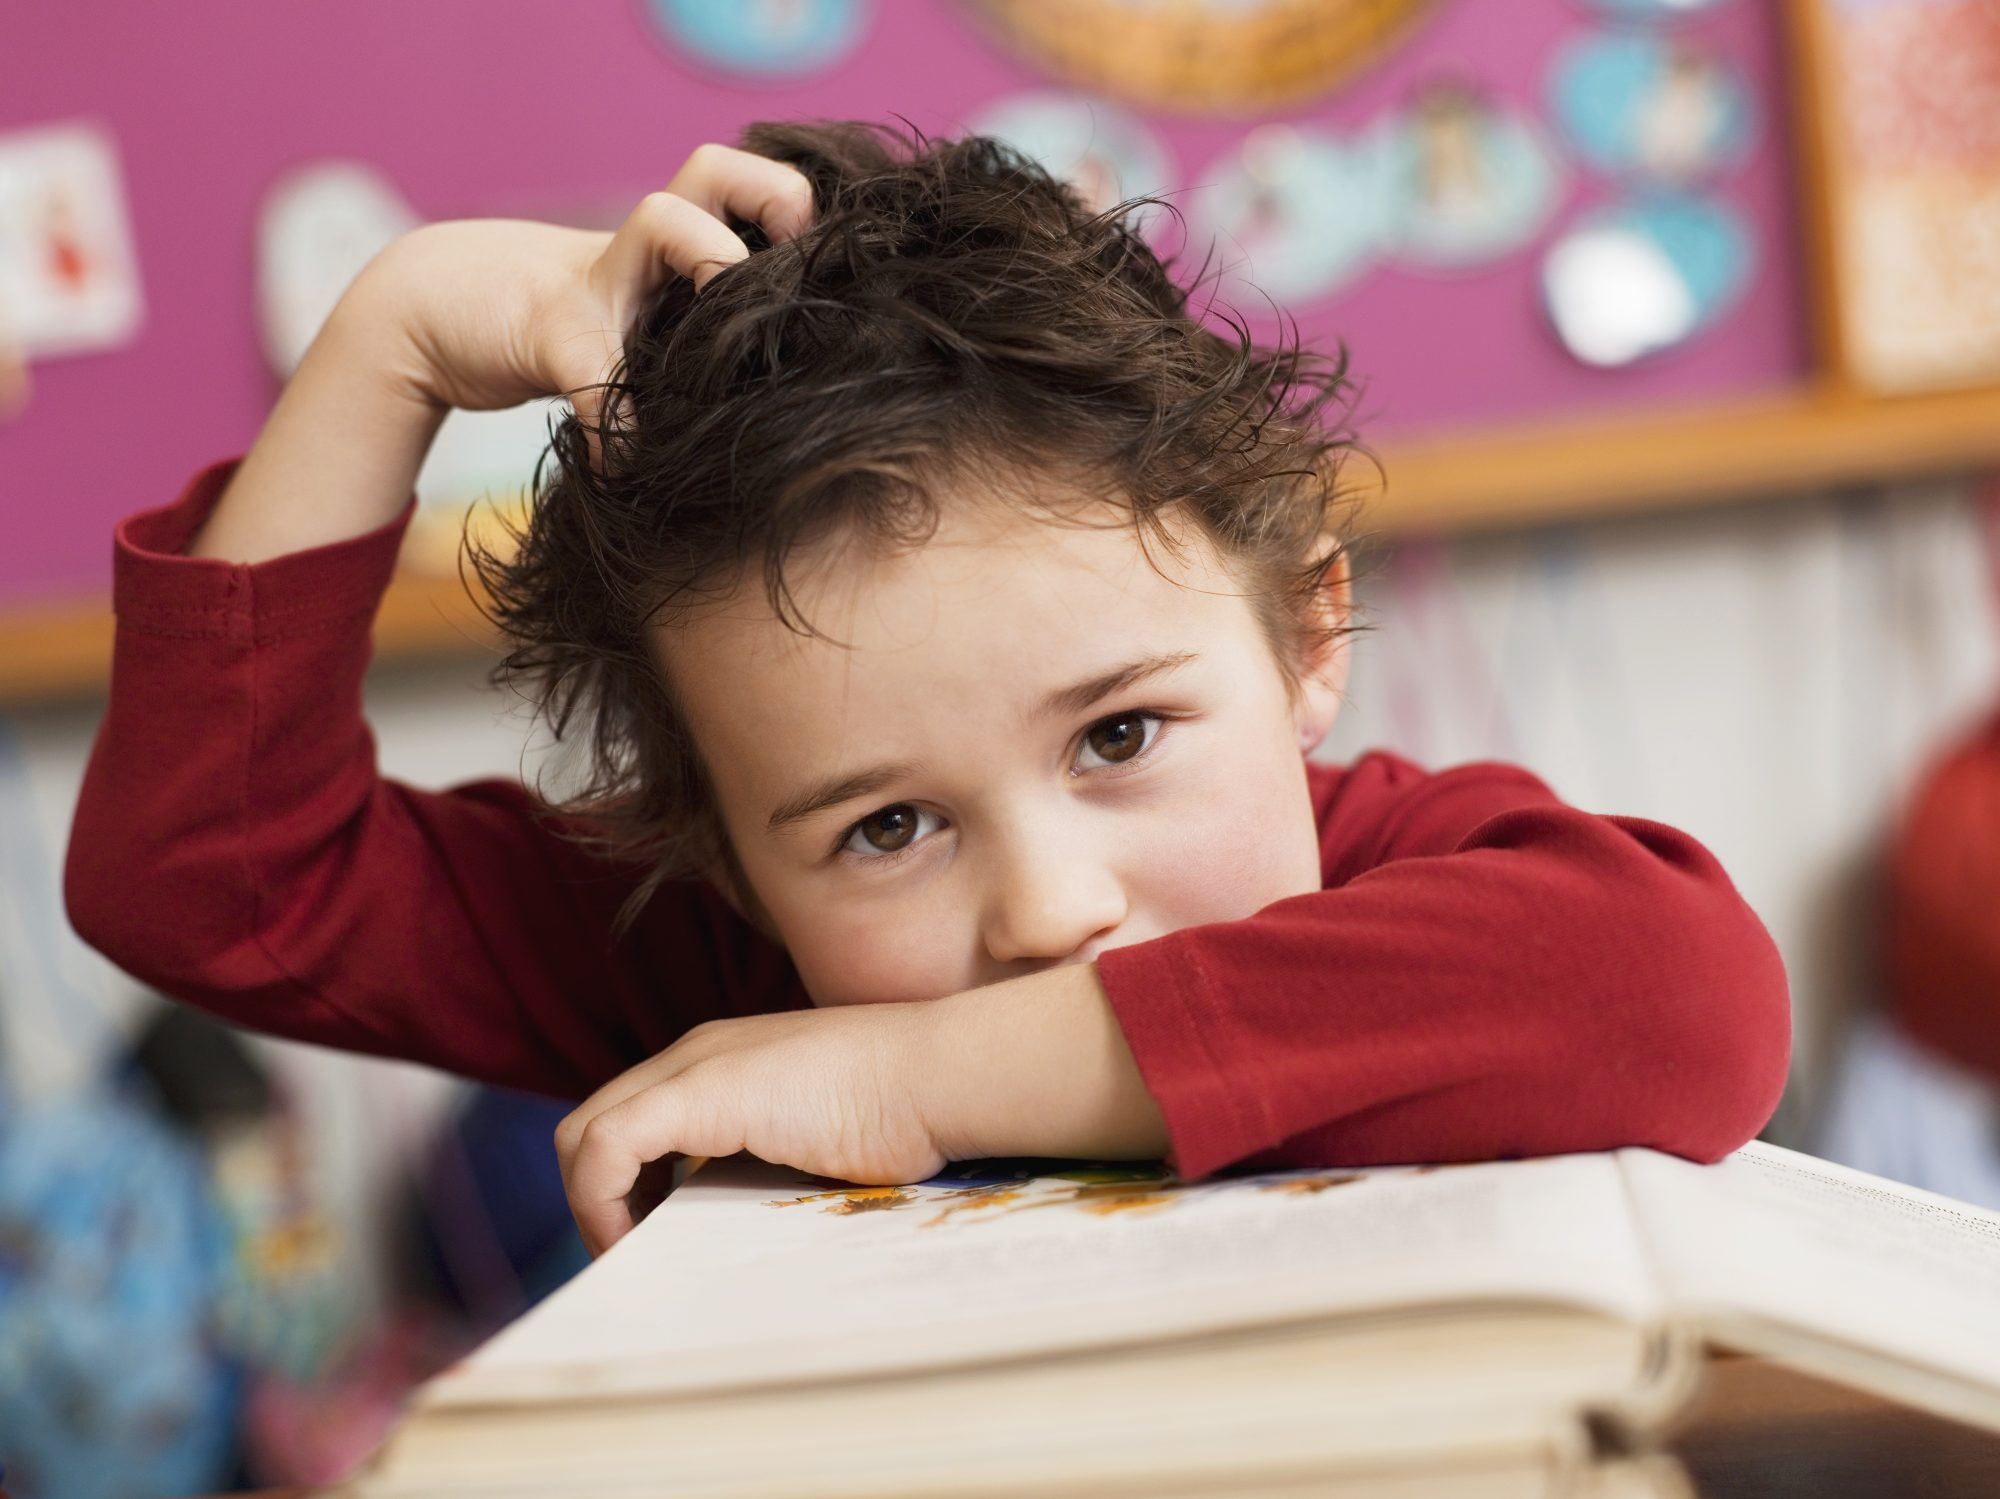 Myth: Kids with lice should be sent home from school